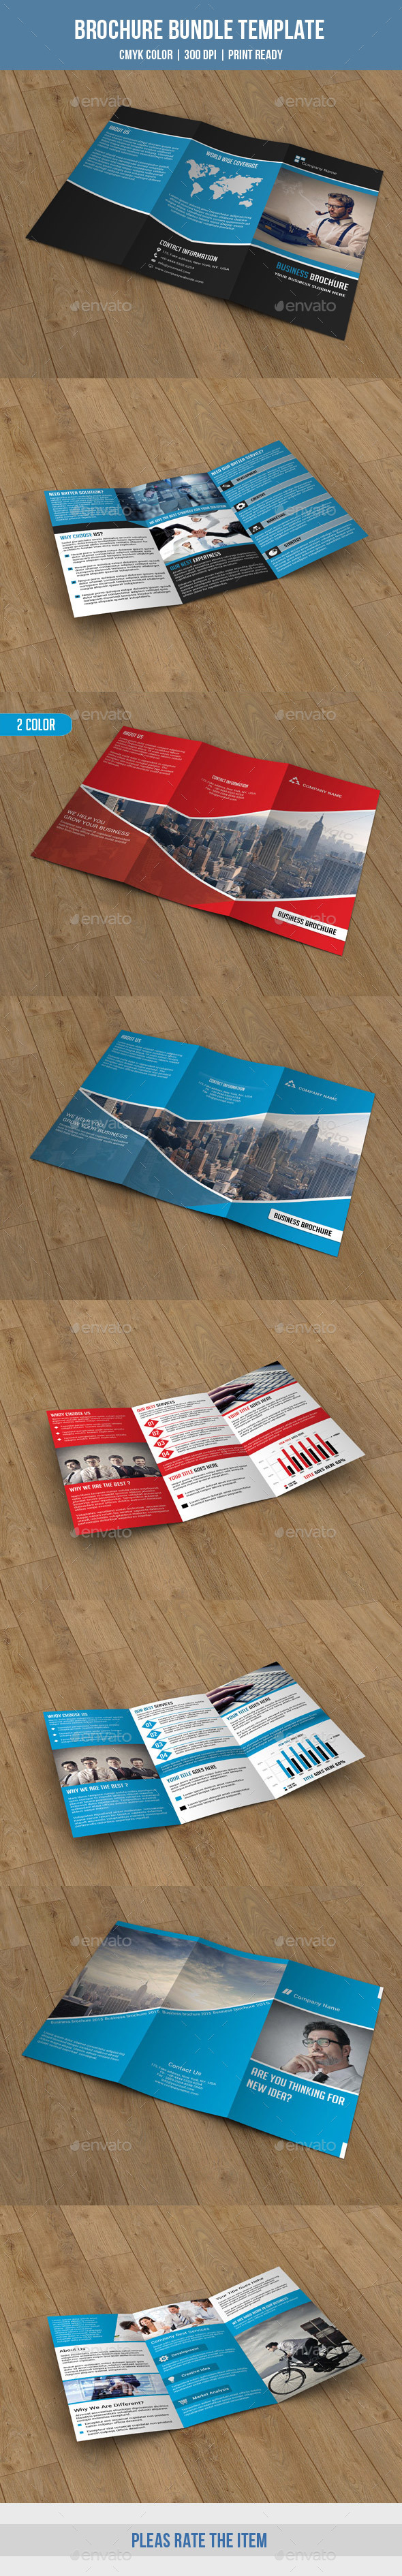 3 in 1 Business Trifold Bundle